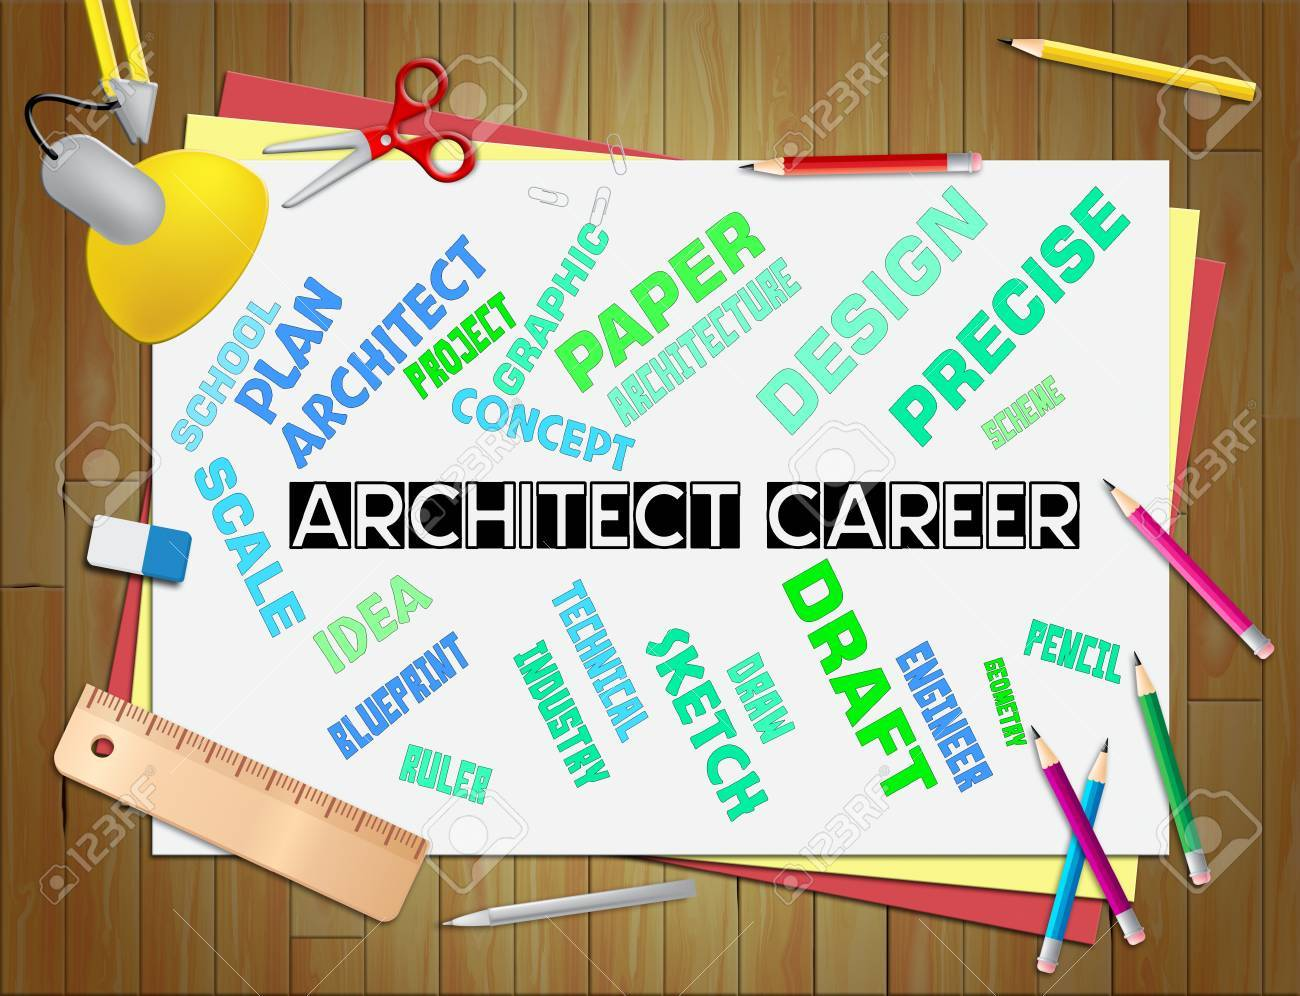 Architect Career Showing Hiring Architecture 3d Illustration Stock ...